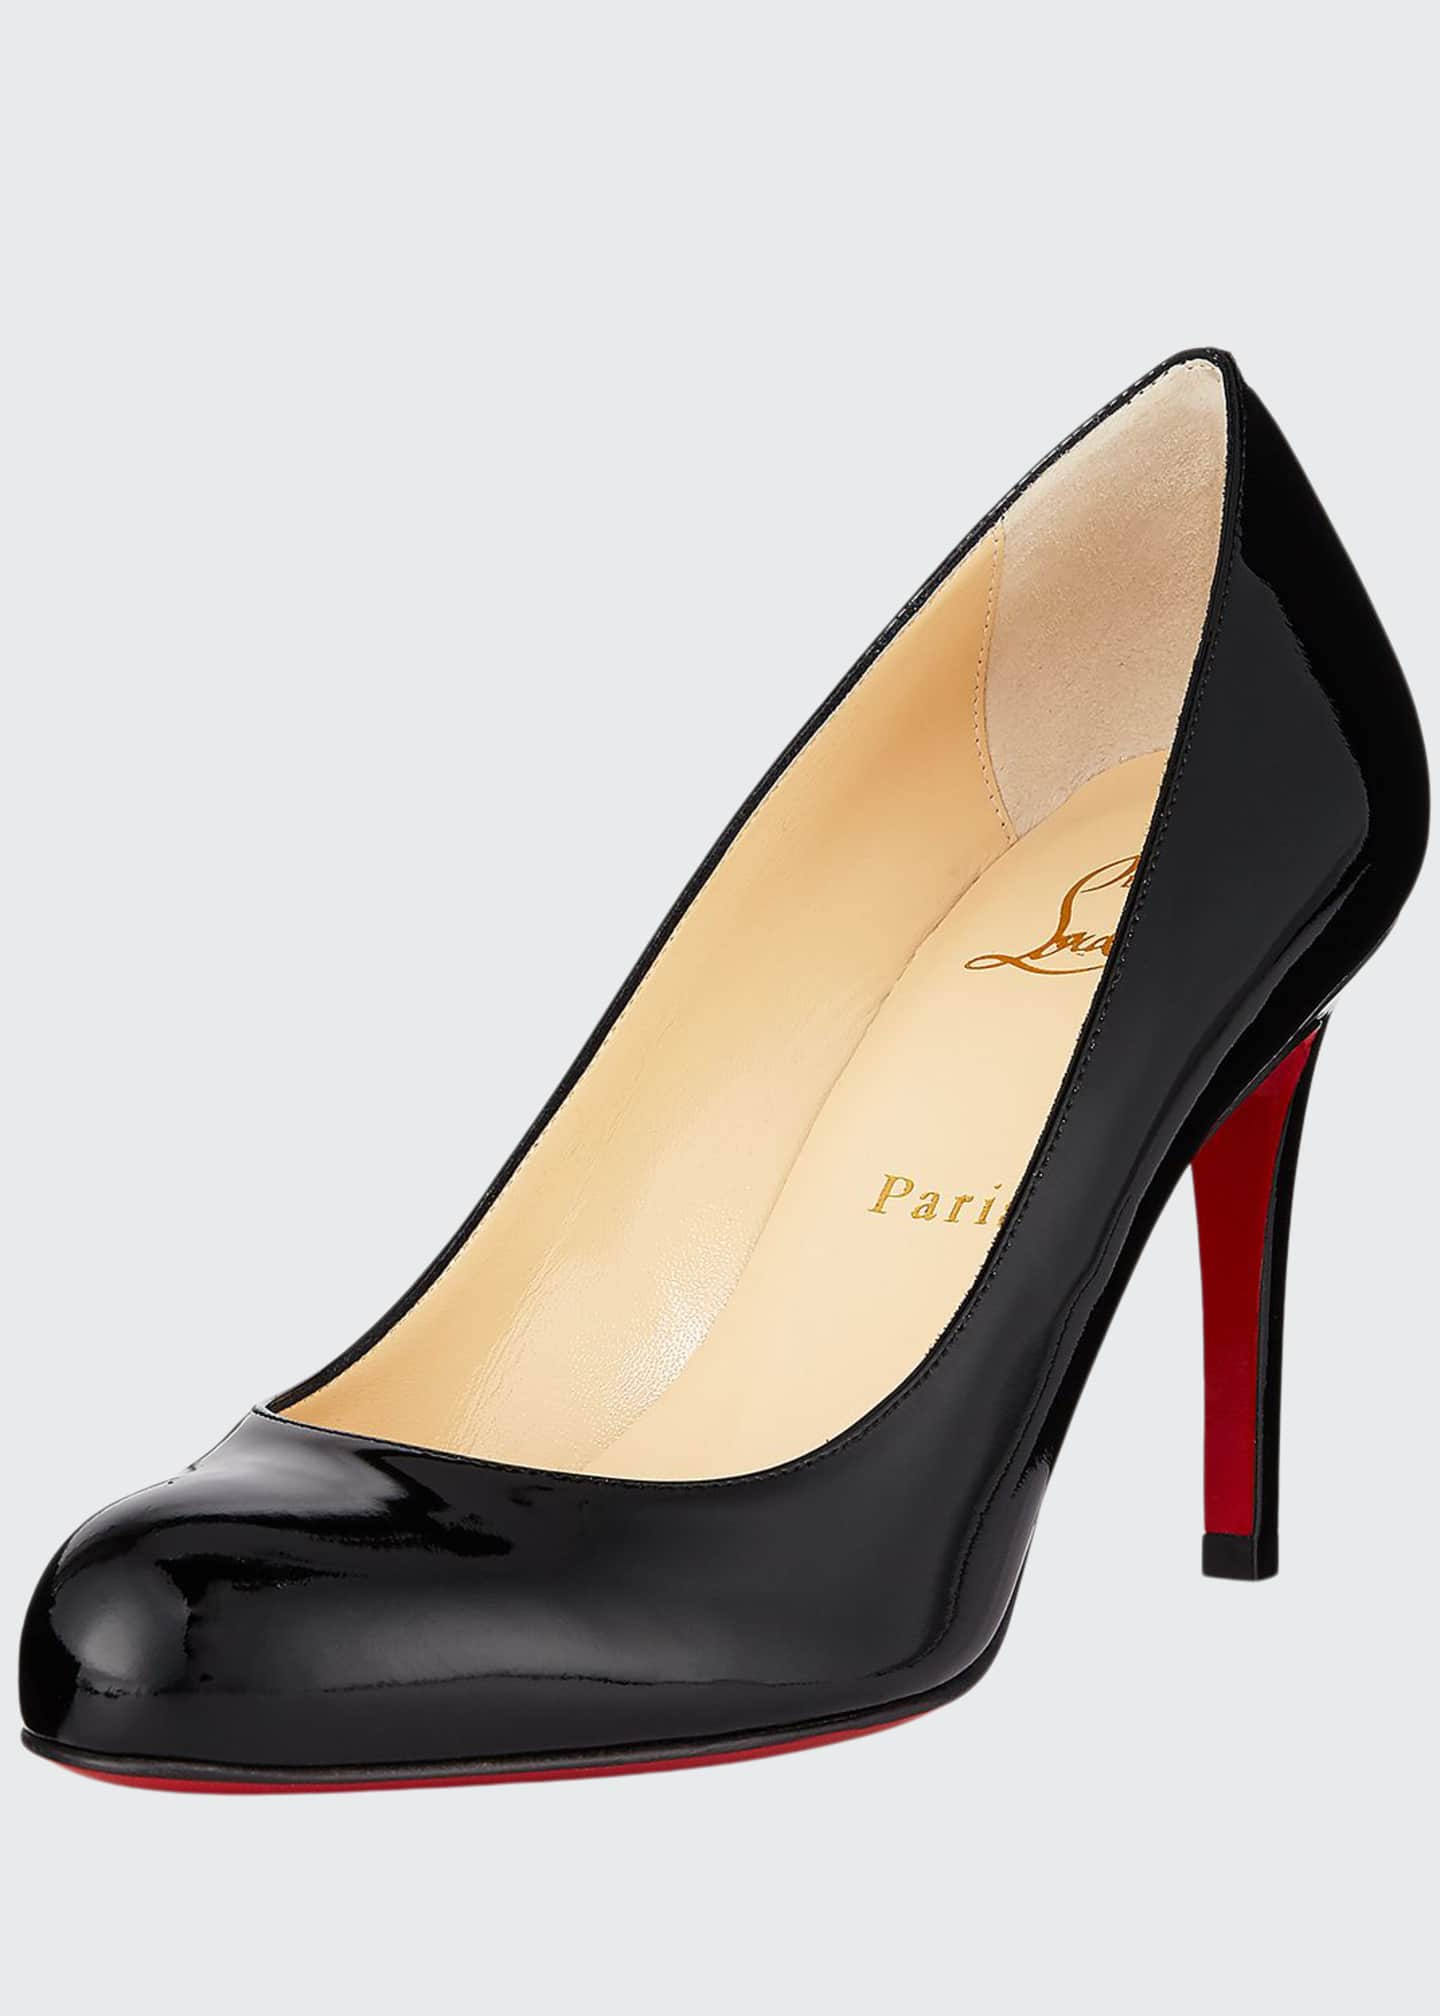 Christian Louboutin Simple Patent 85mm Red Sole Pumps